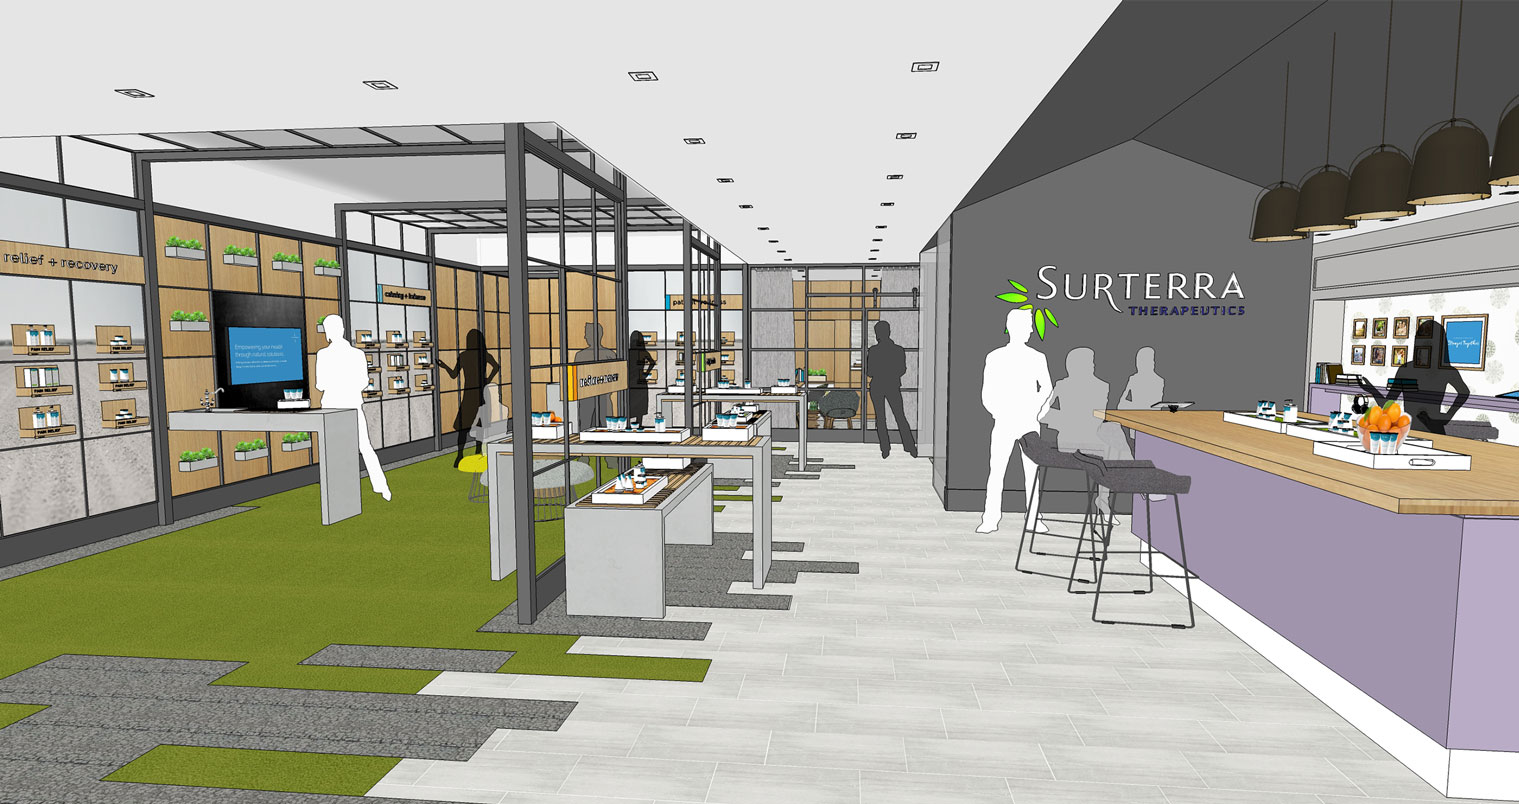 Surterra rendering showing kitchen and garden